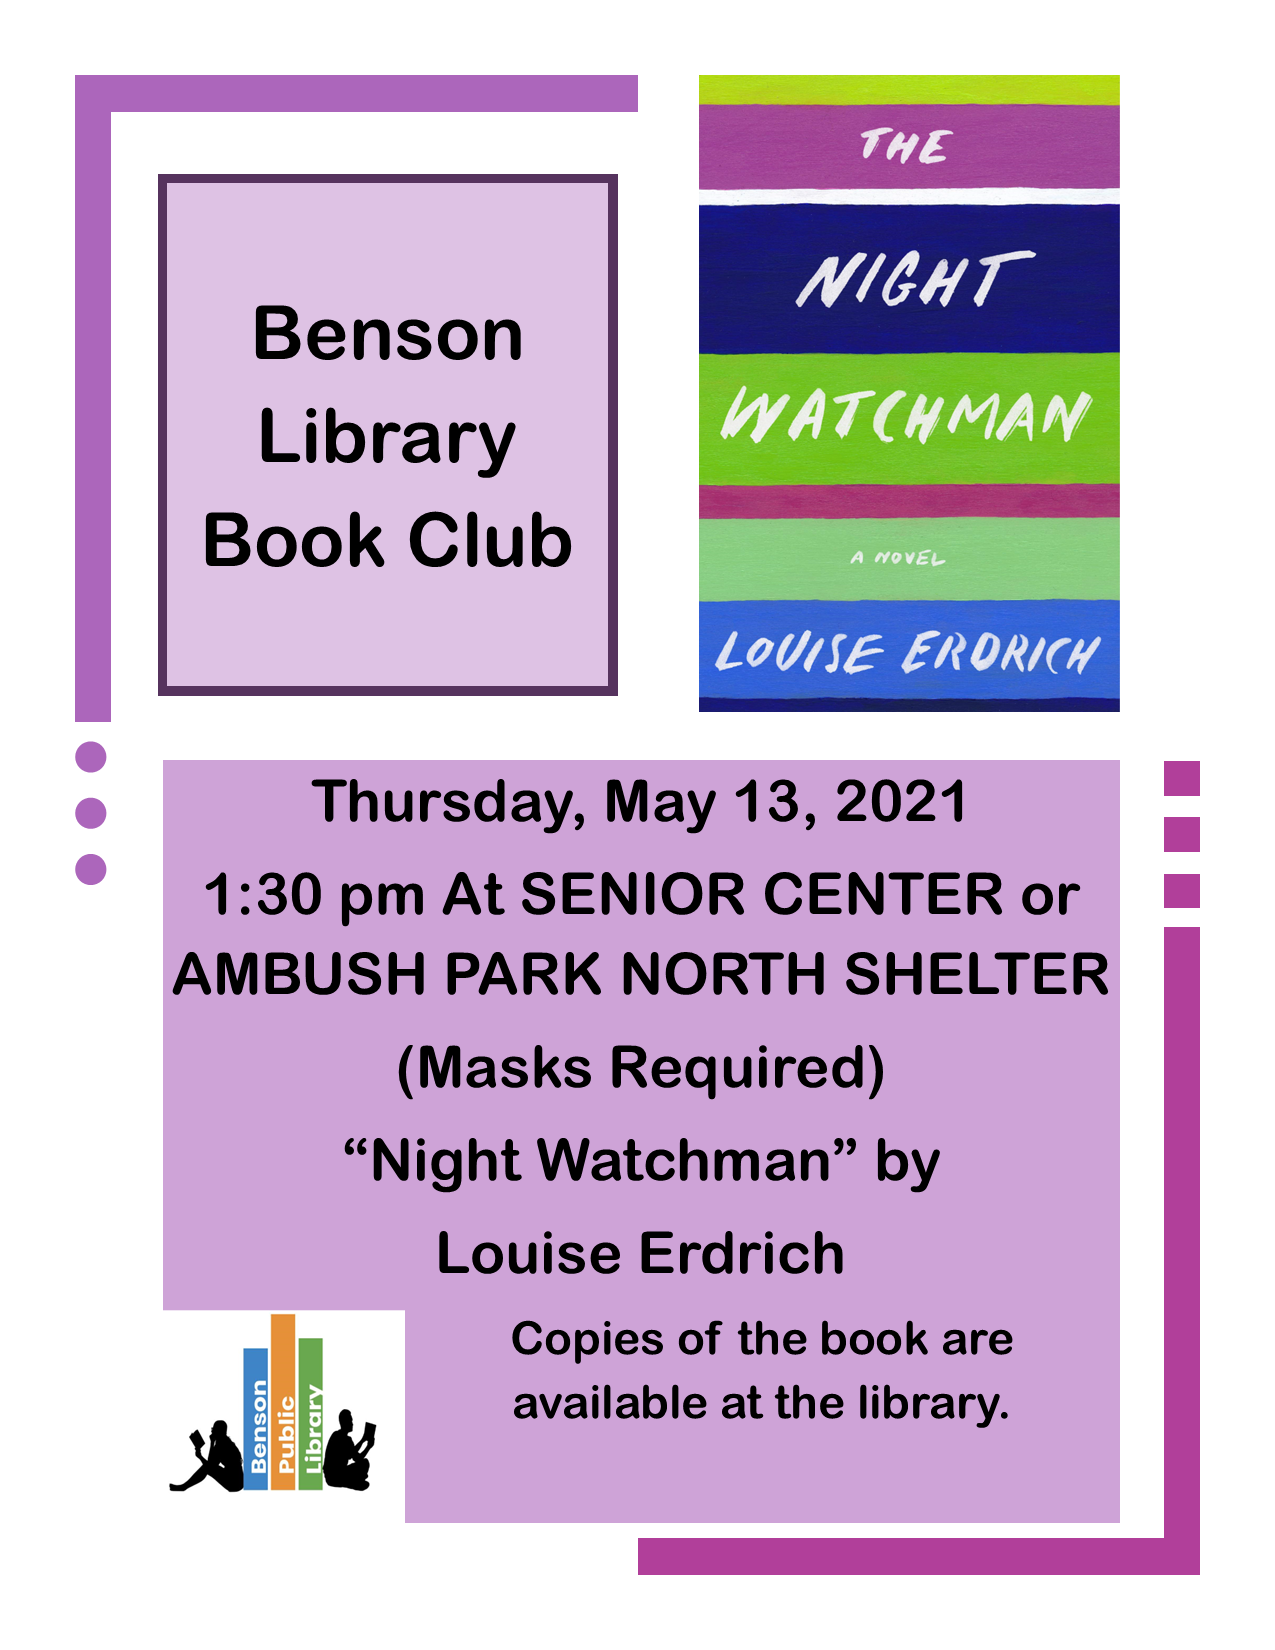 Join us on Thursday, May 13th at 1:30 pm at either the North Shelter of Ambush Park if the weather is nice or the Senior Center if it not for book club. The book this month is 'Night Watchman' by Louise Erdrich. Copies are available at the library.